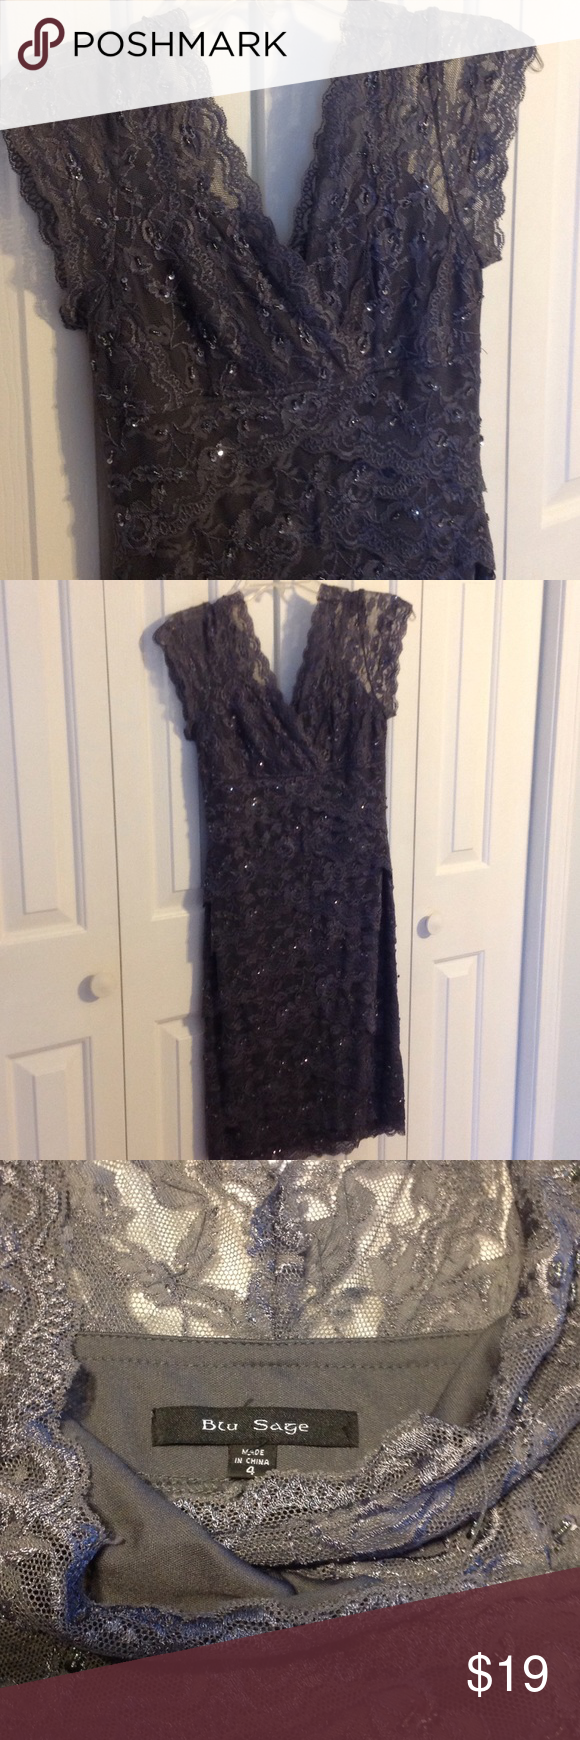 Lace below knee dress  Dark Gray Sequin u Bead Lace Dress Pewter colored Lace Dress Vneck